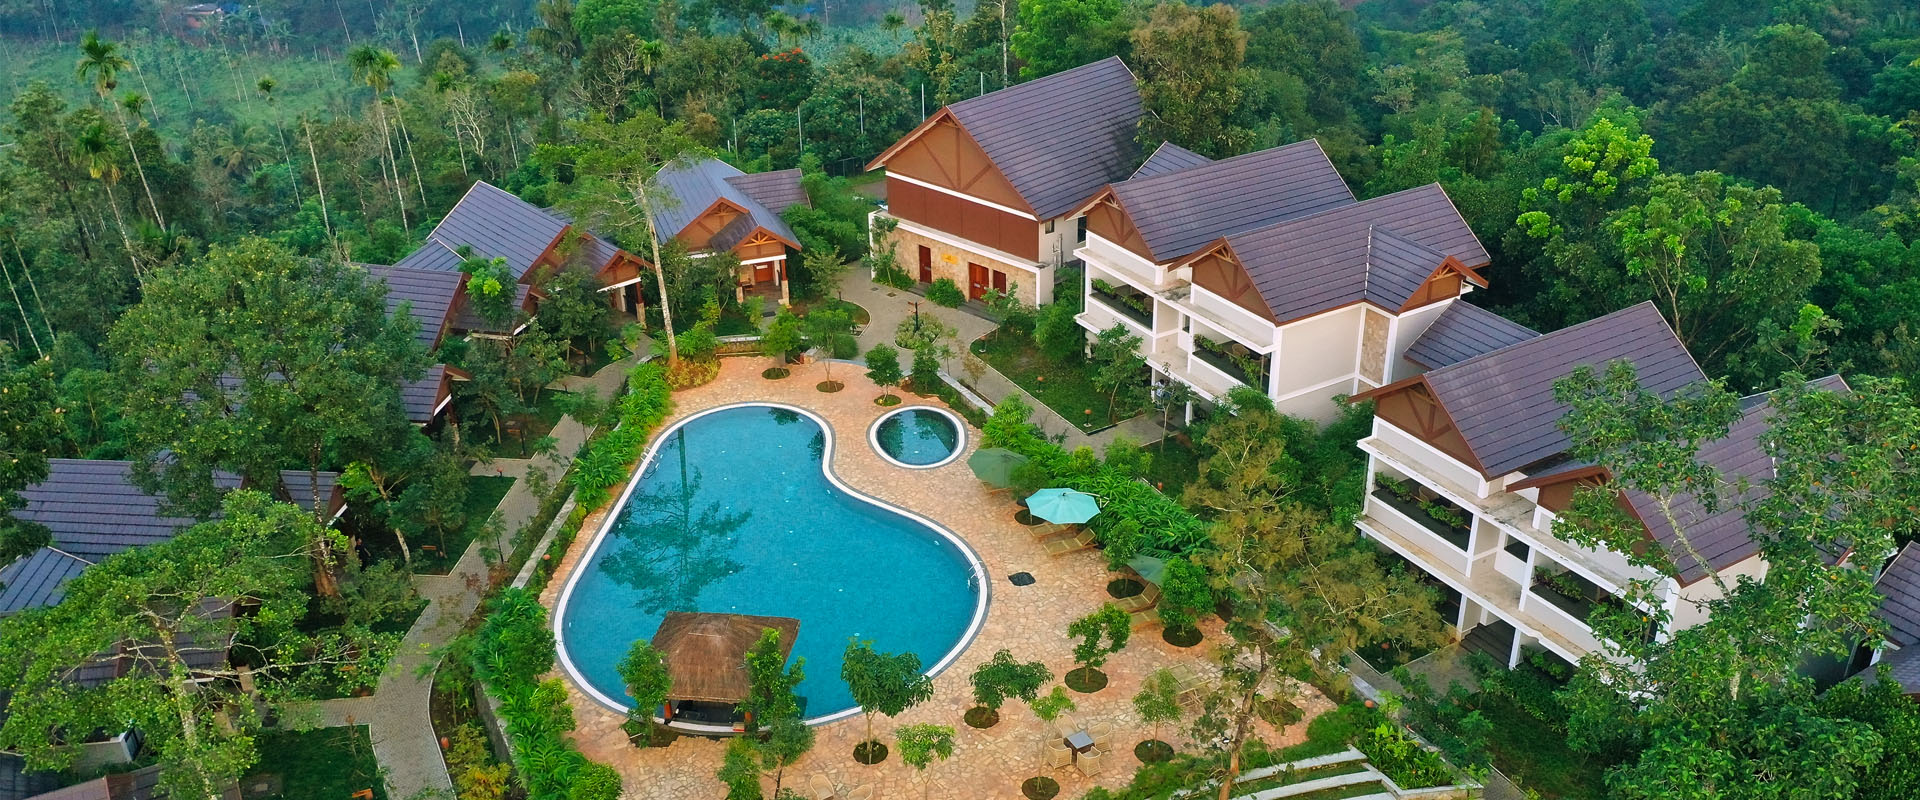 Best resort in Wayanad with private pool